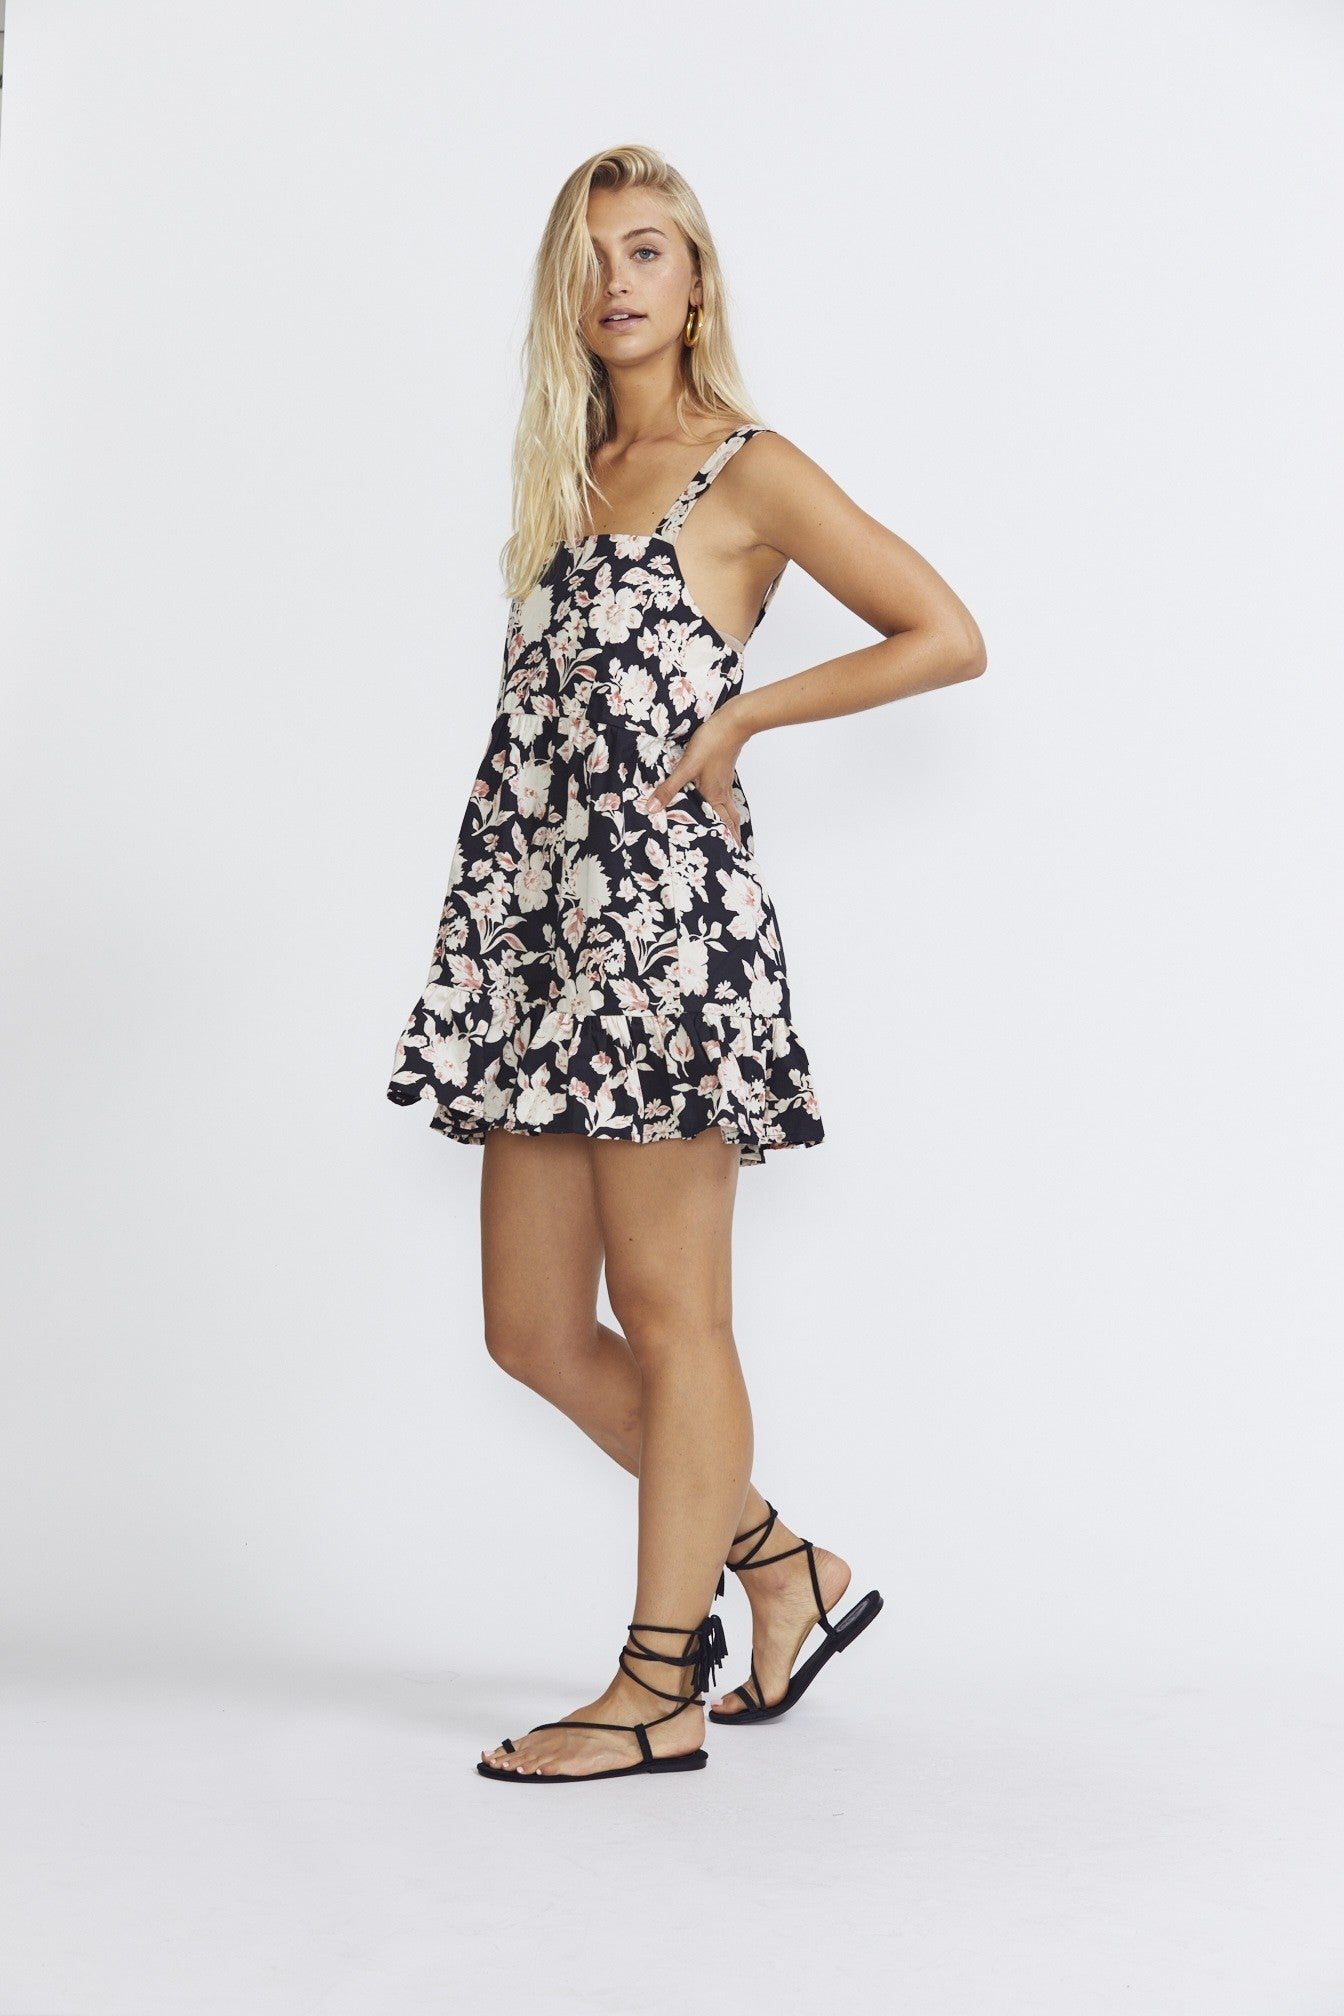 ÉSS THE LABEL Jaia Mini - Red/Cream Floral